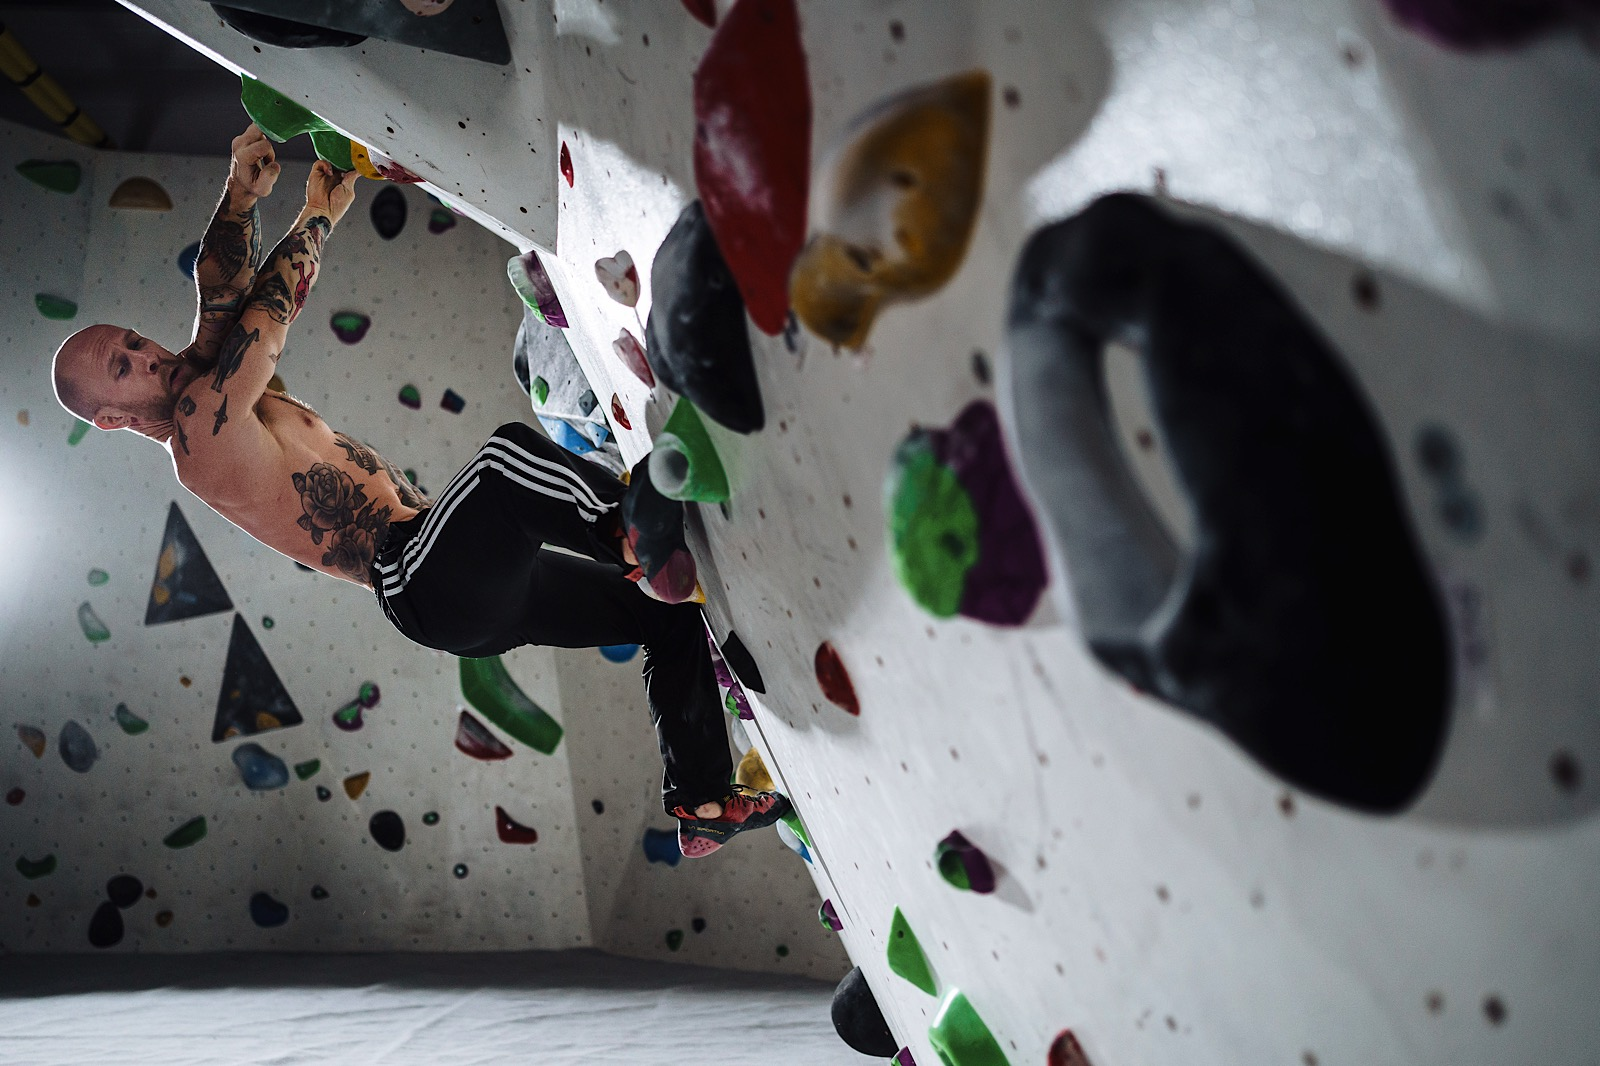 Bare chested man with tattoos on indoor climbing wall